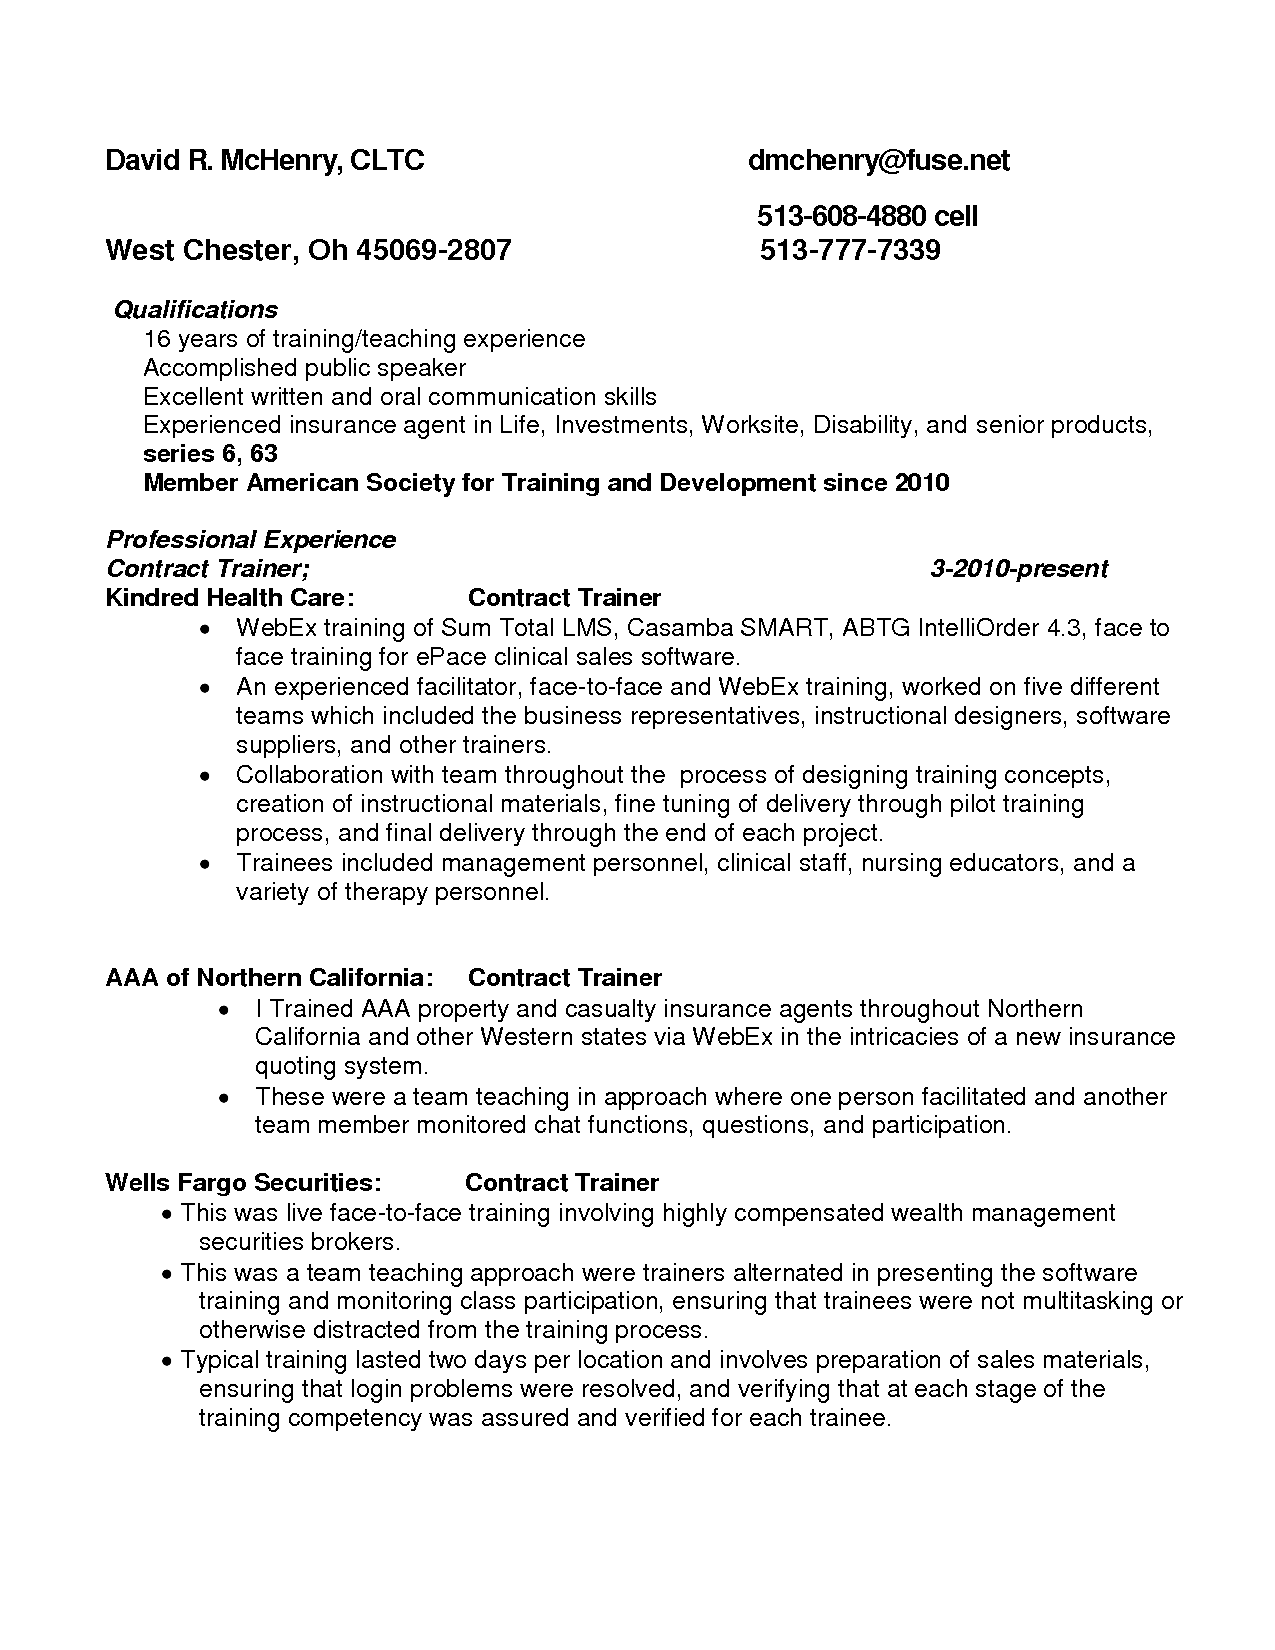 Insurance Agent Resume Examples  HttpWwwJobresumeWebsite